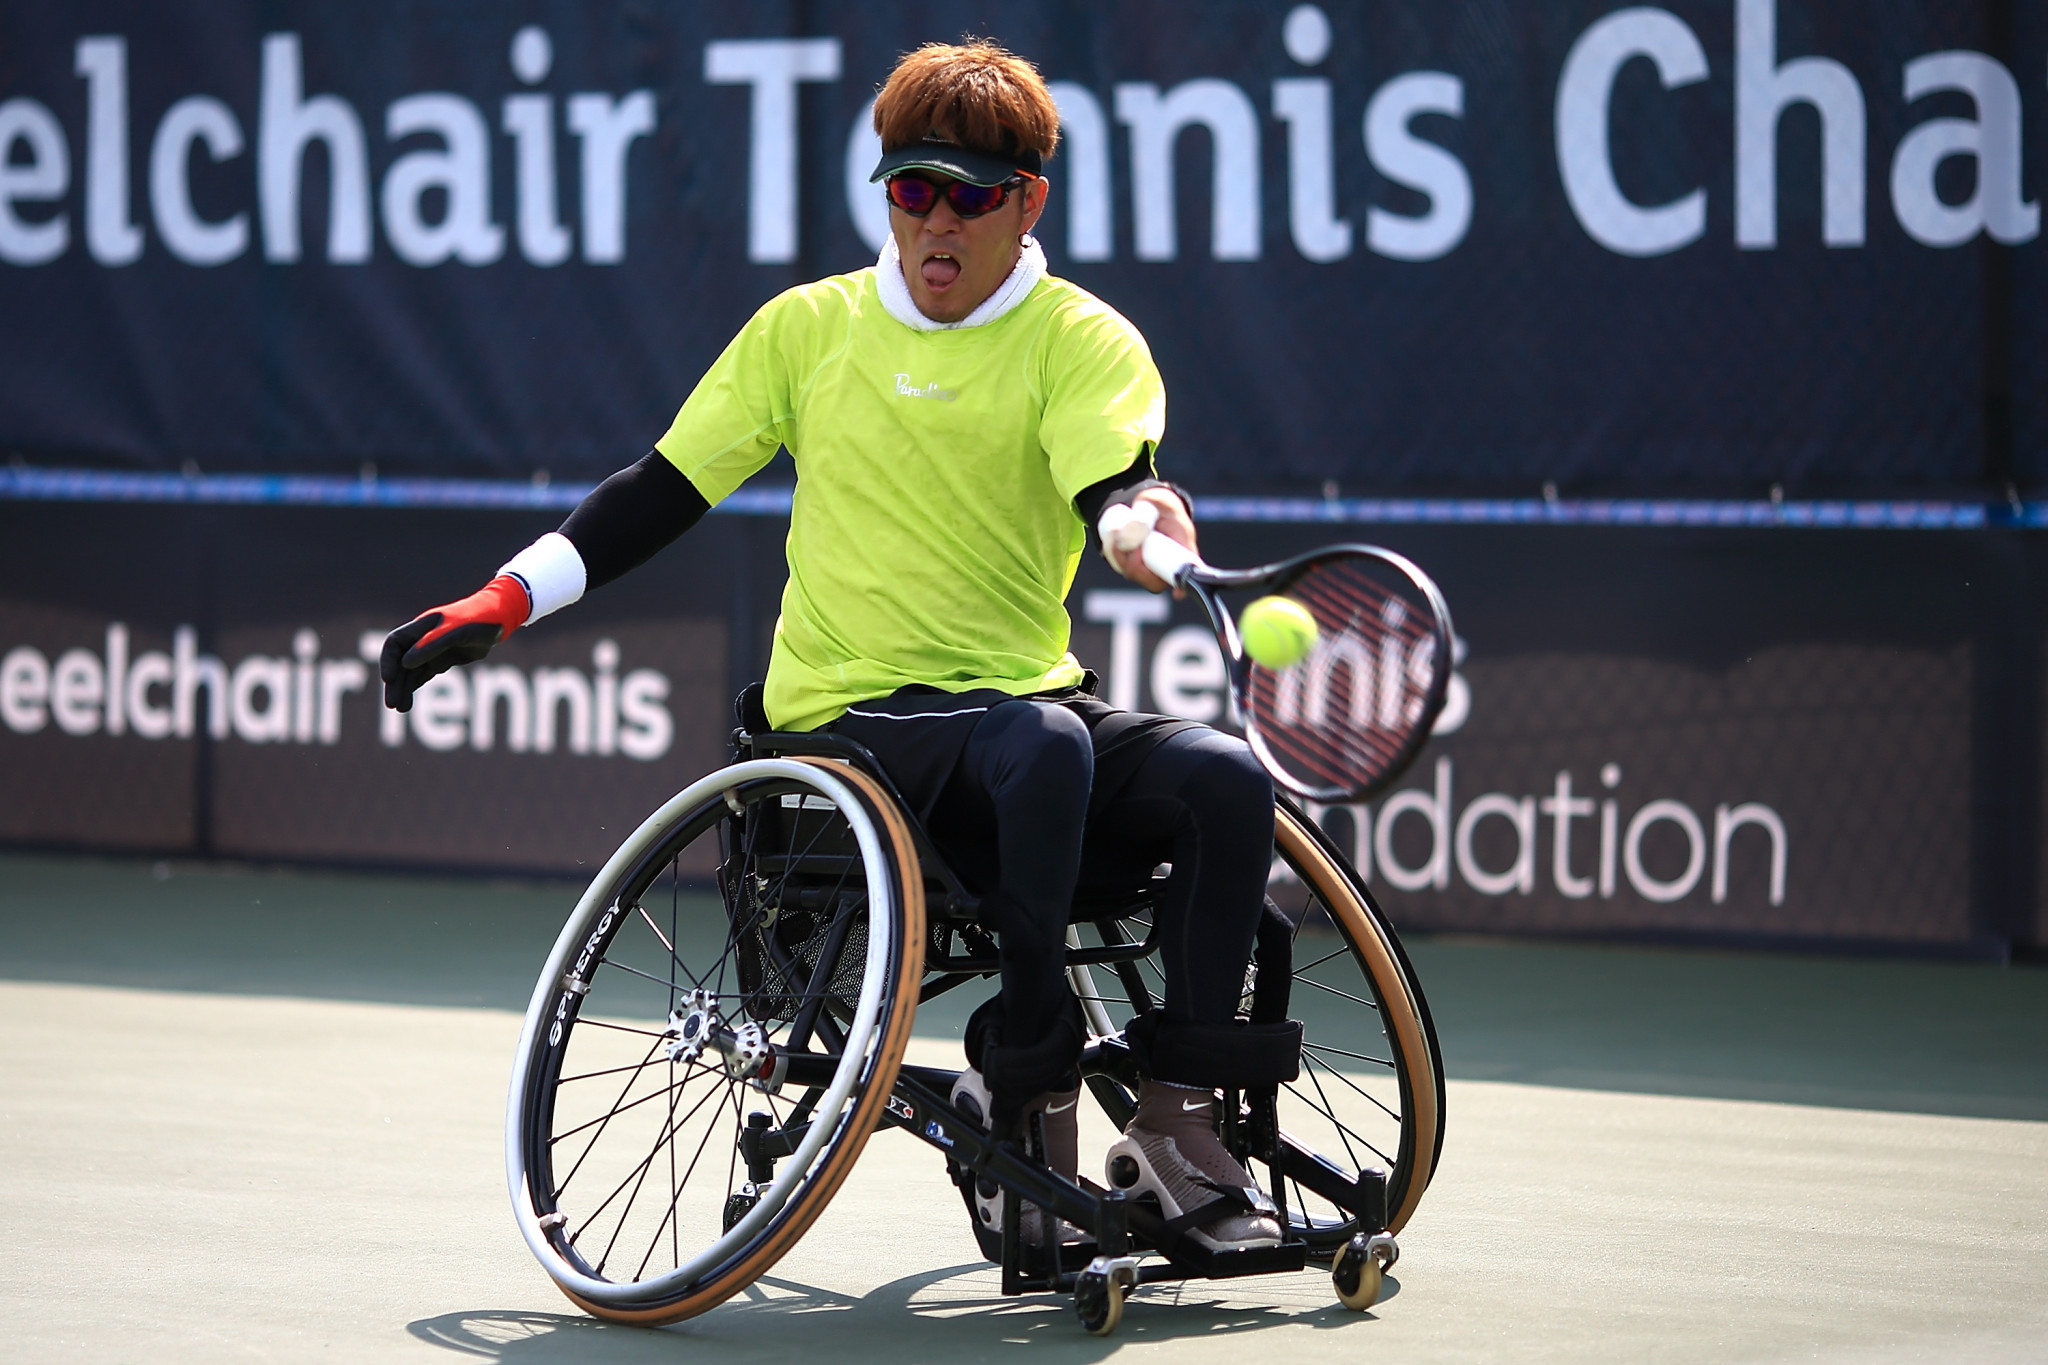 Second seed Koji Sugeno of Japan is through to the semi-finals of the quads singles event ©Getty Images